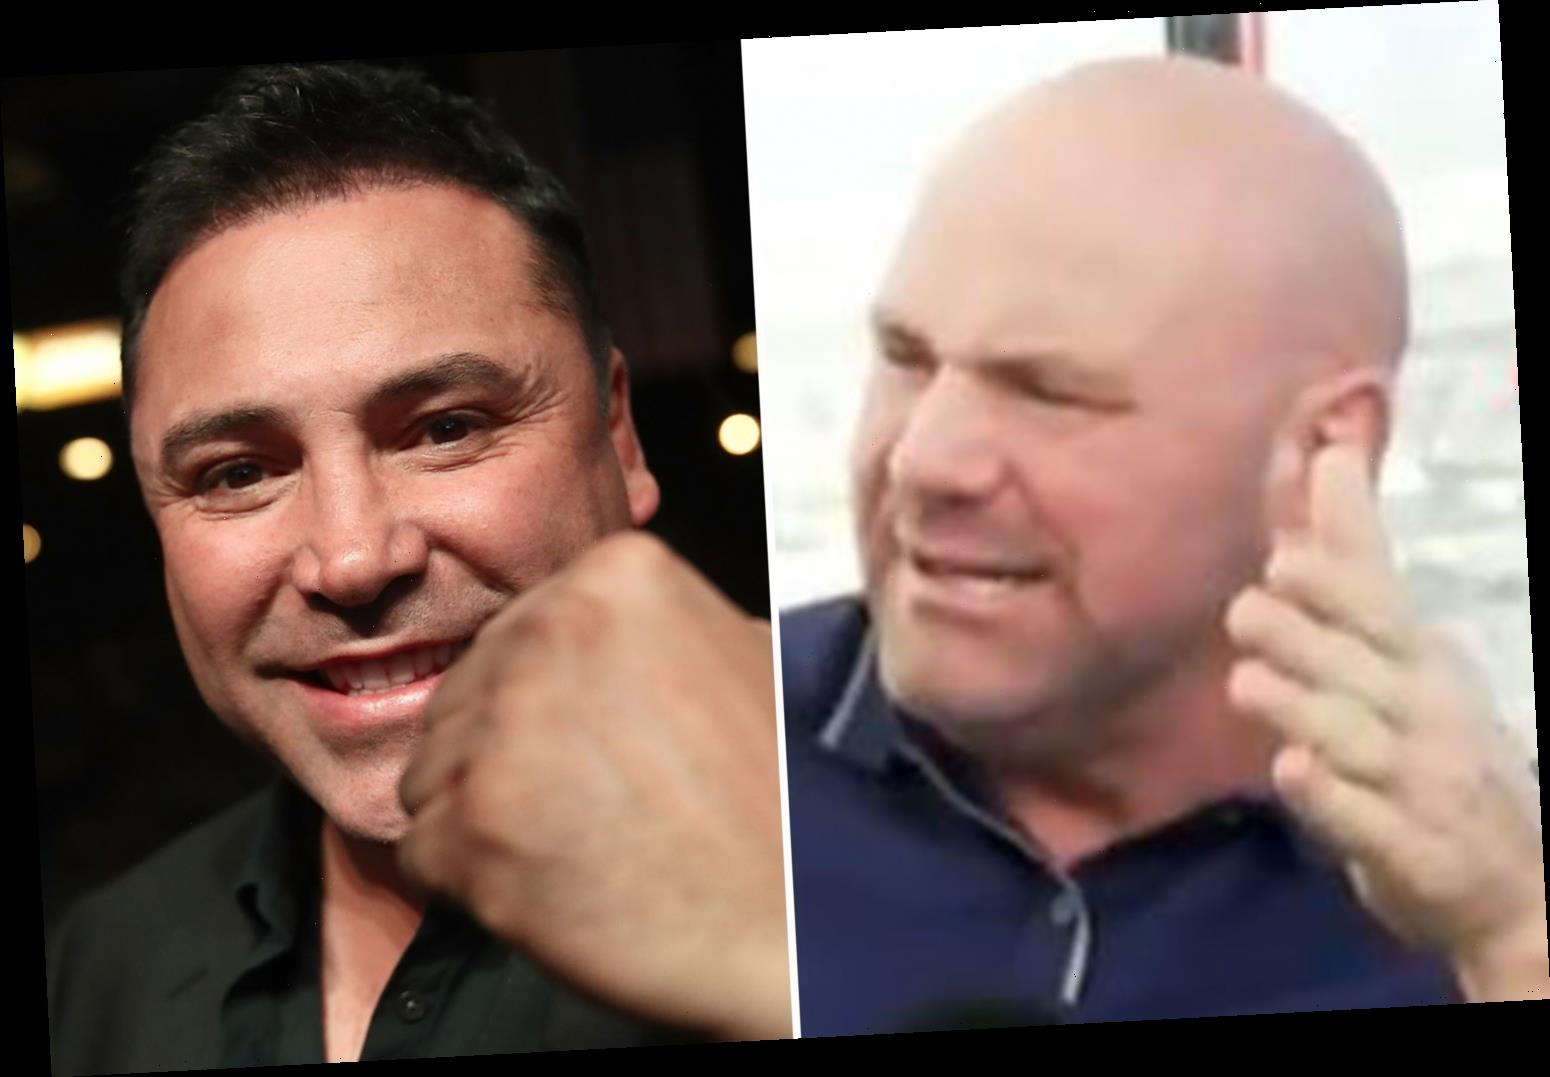 Dana White says 'this s*** is getting silly' amid Oscar De La Hoya comeback and rules out UFC star facing boxing legend